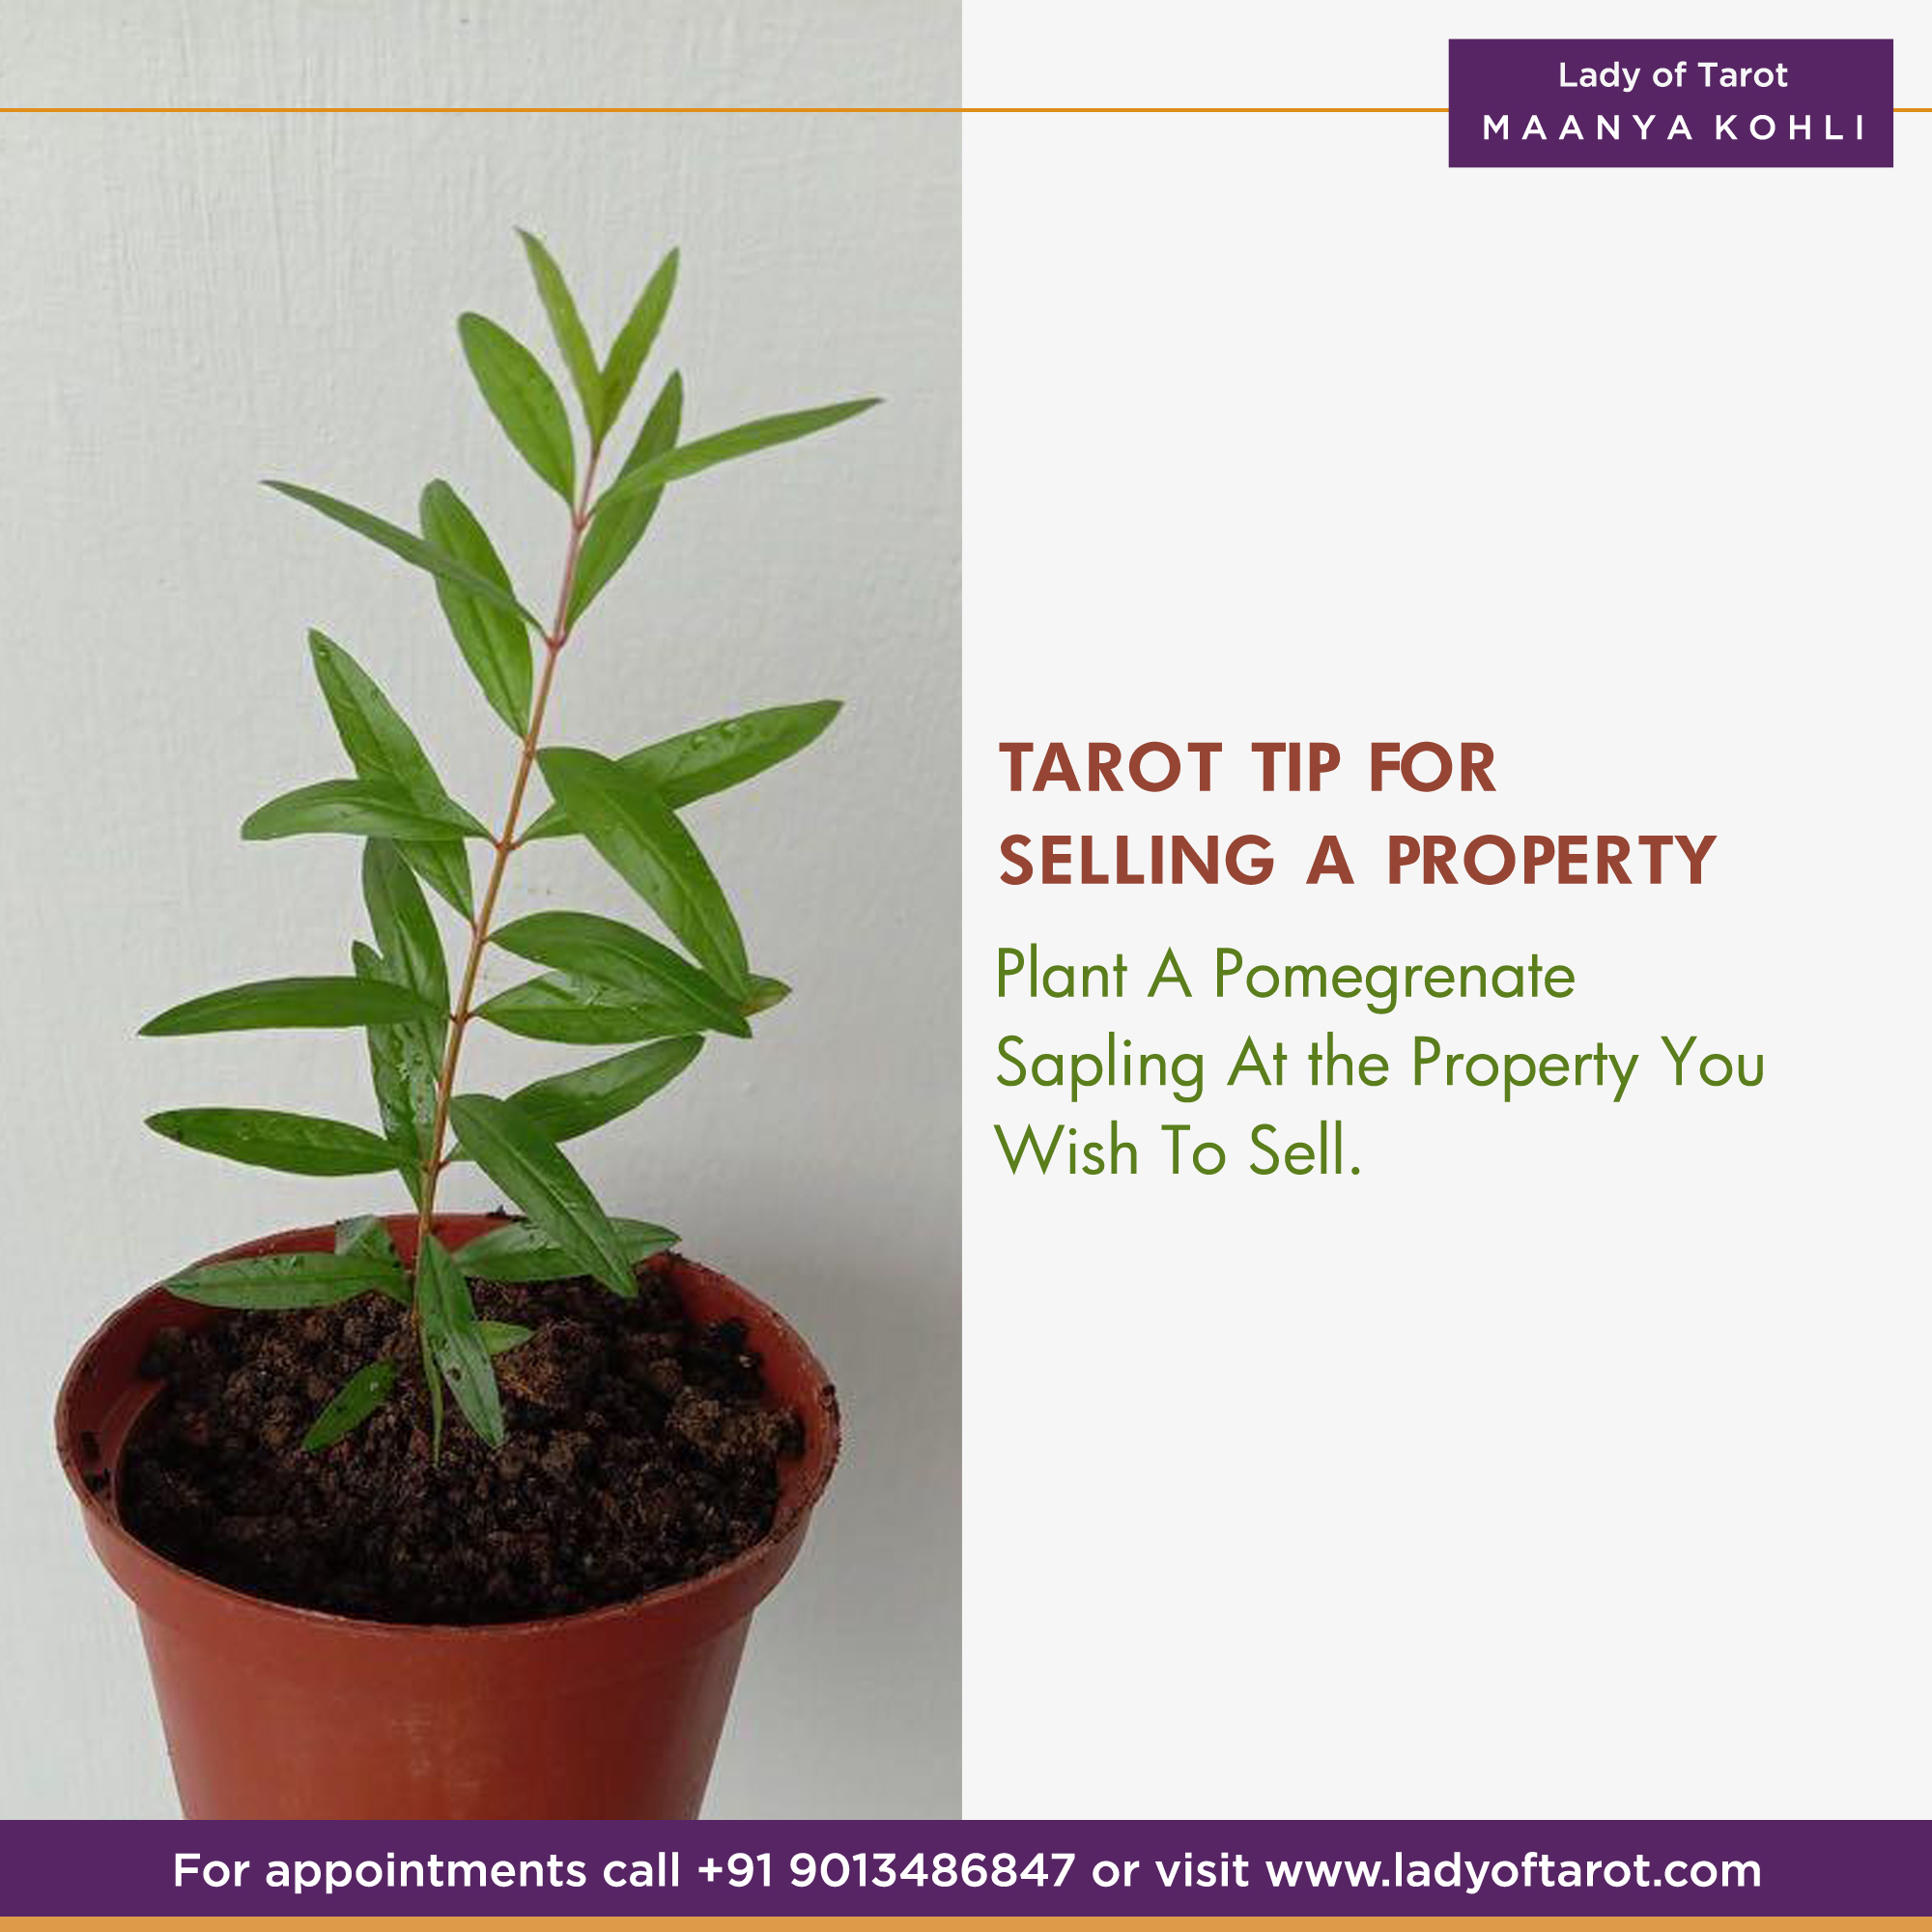 Tarot Tip for Selling Property